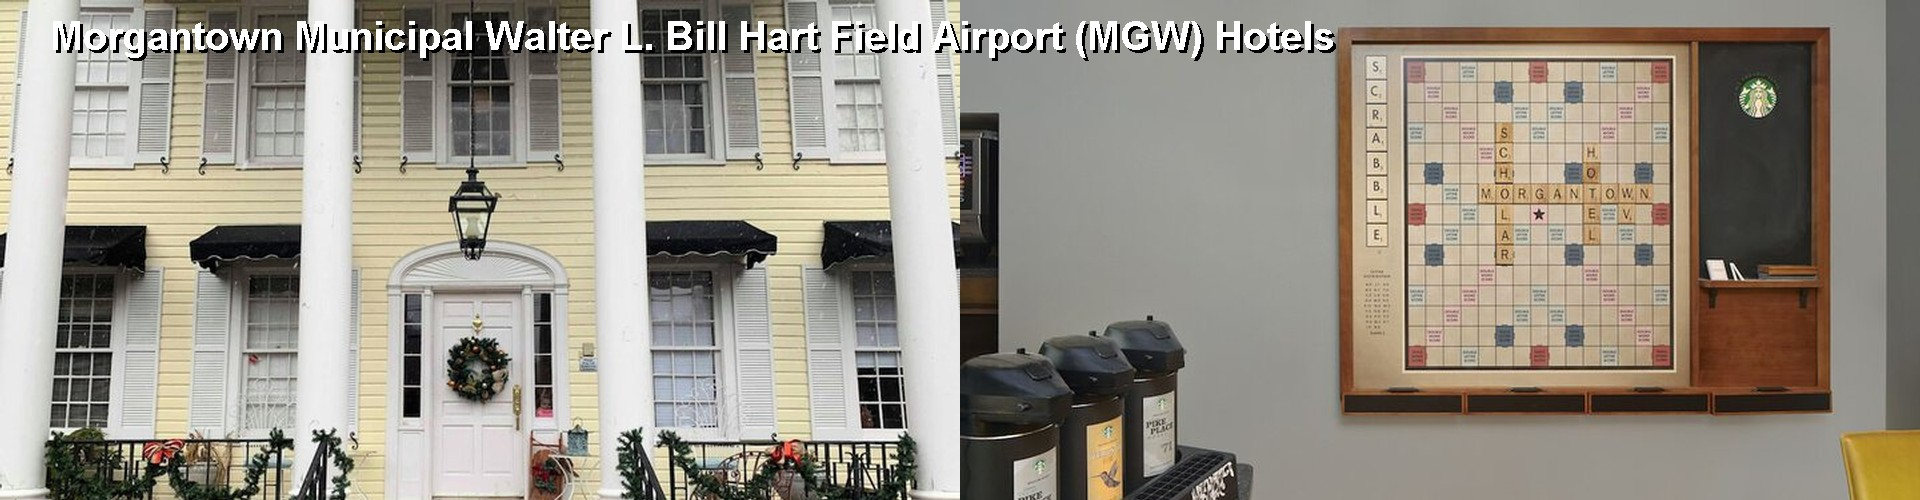 5 Best Hotels near Morgantown Municipal Walter L. Bill Hart Field Airport (MGW)